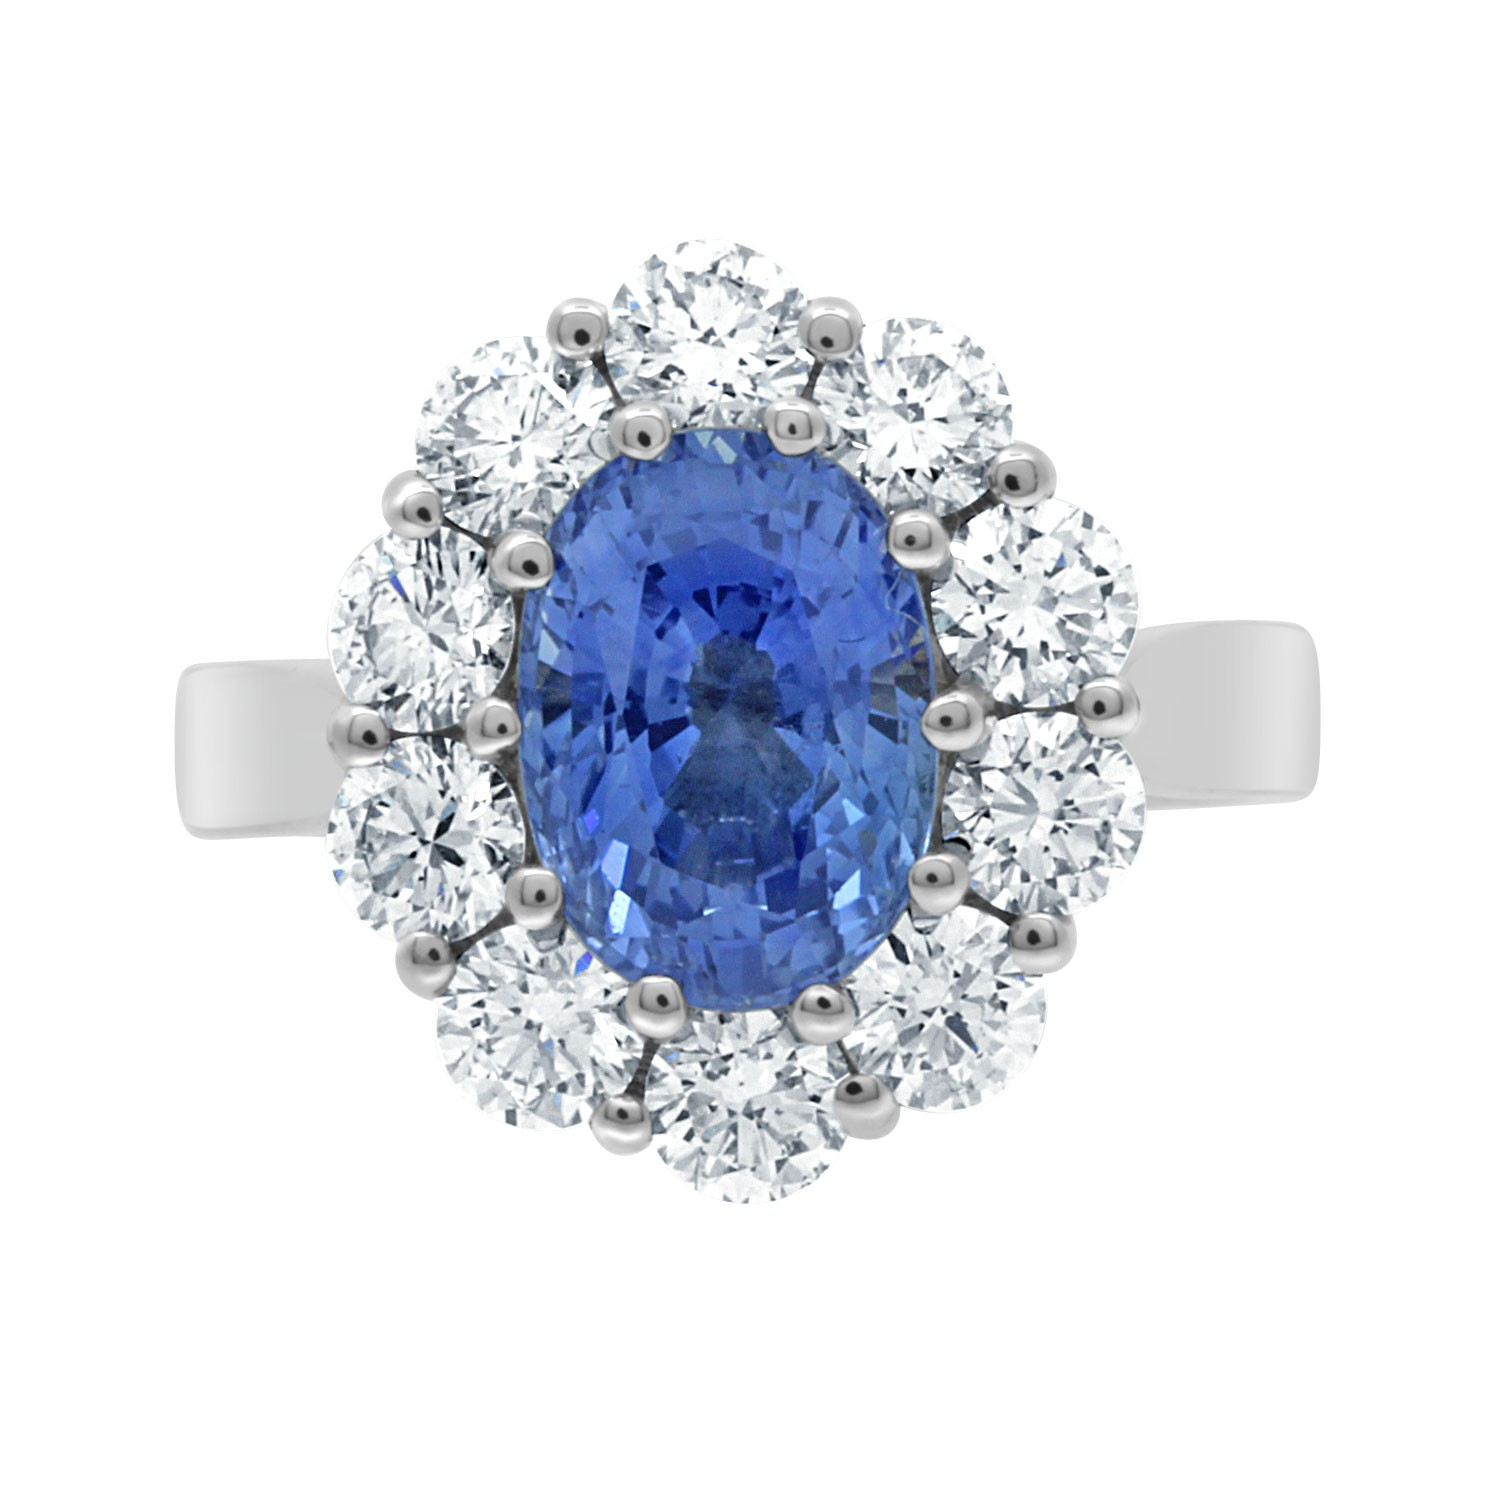 they royal tasks and to say the your wisdom stone banner birthstone helps this you loyalty nobility gem is of on coster september focus diamonds sapphire represents